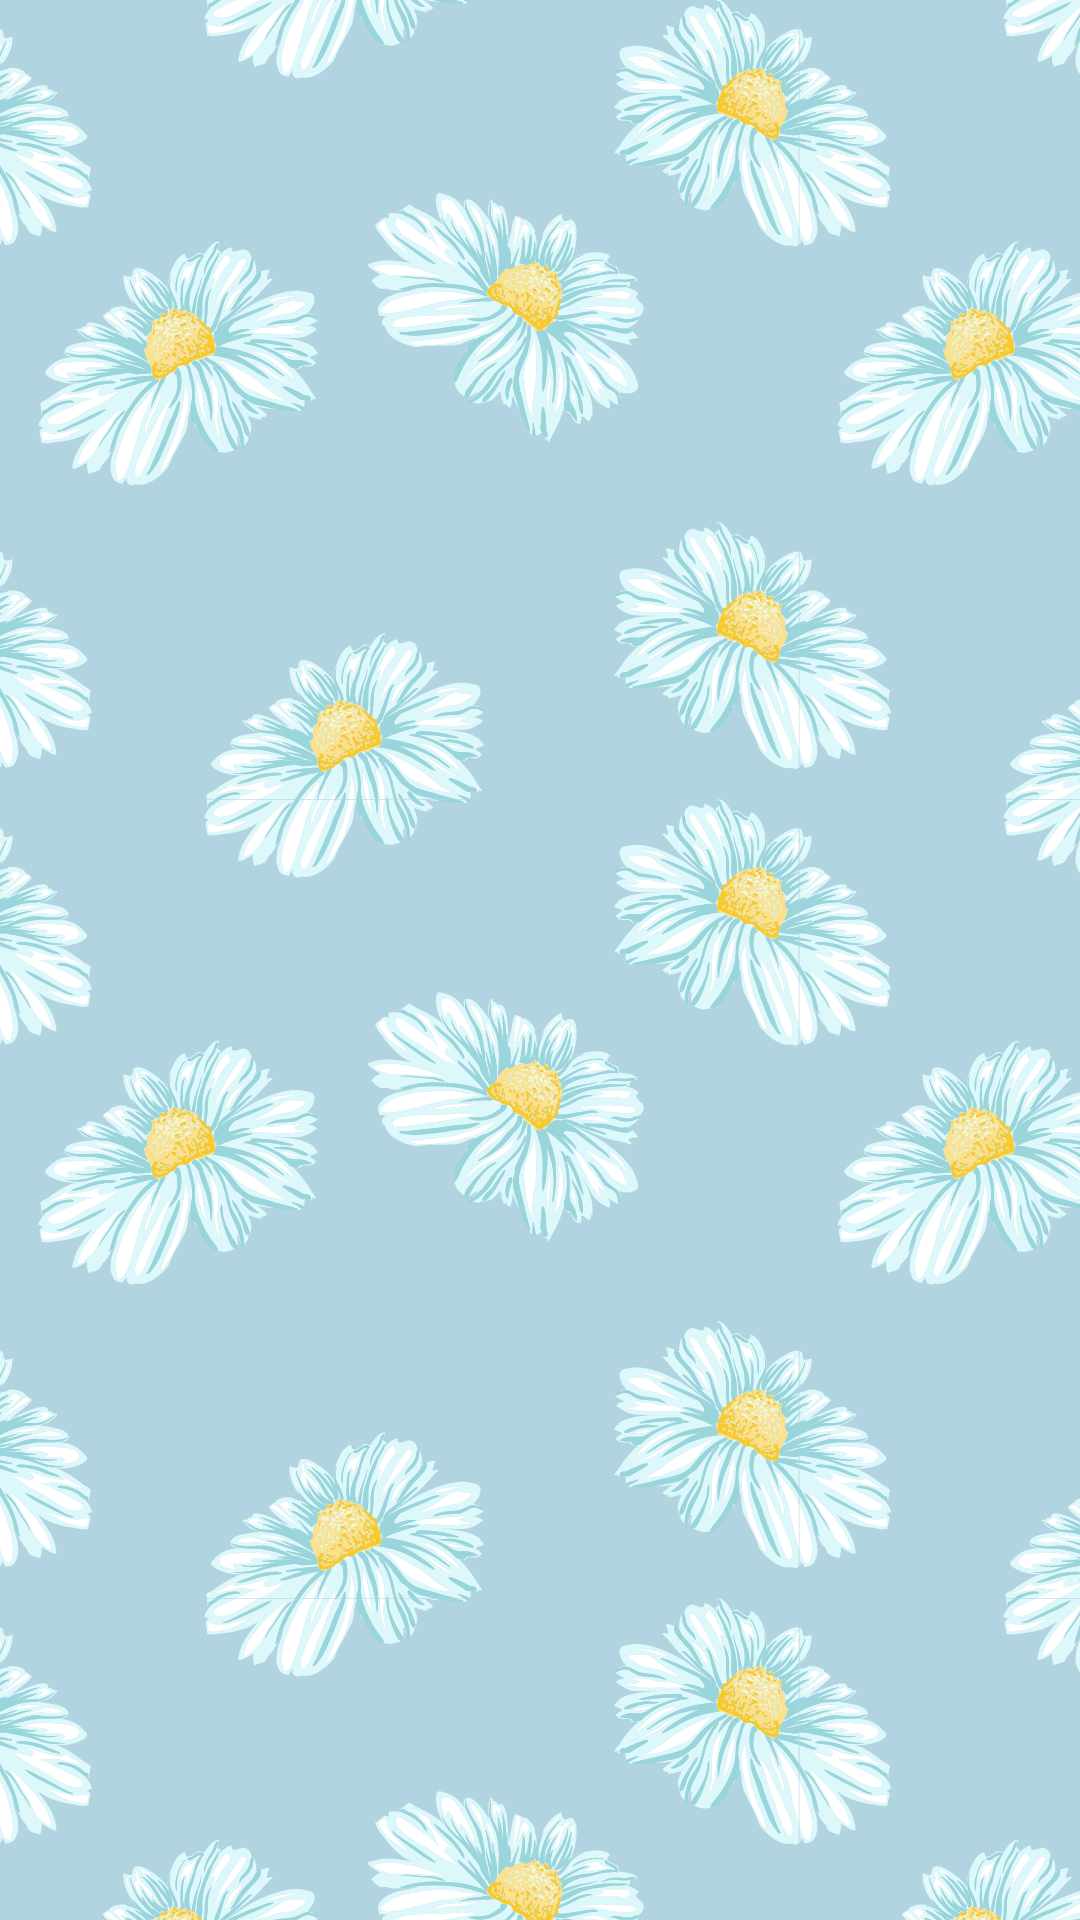 cute daisies wallpaper for spring